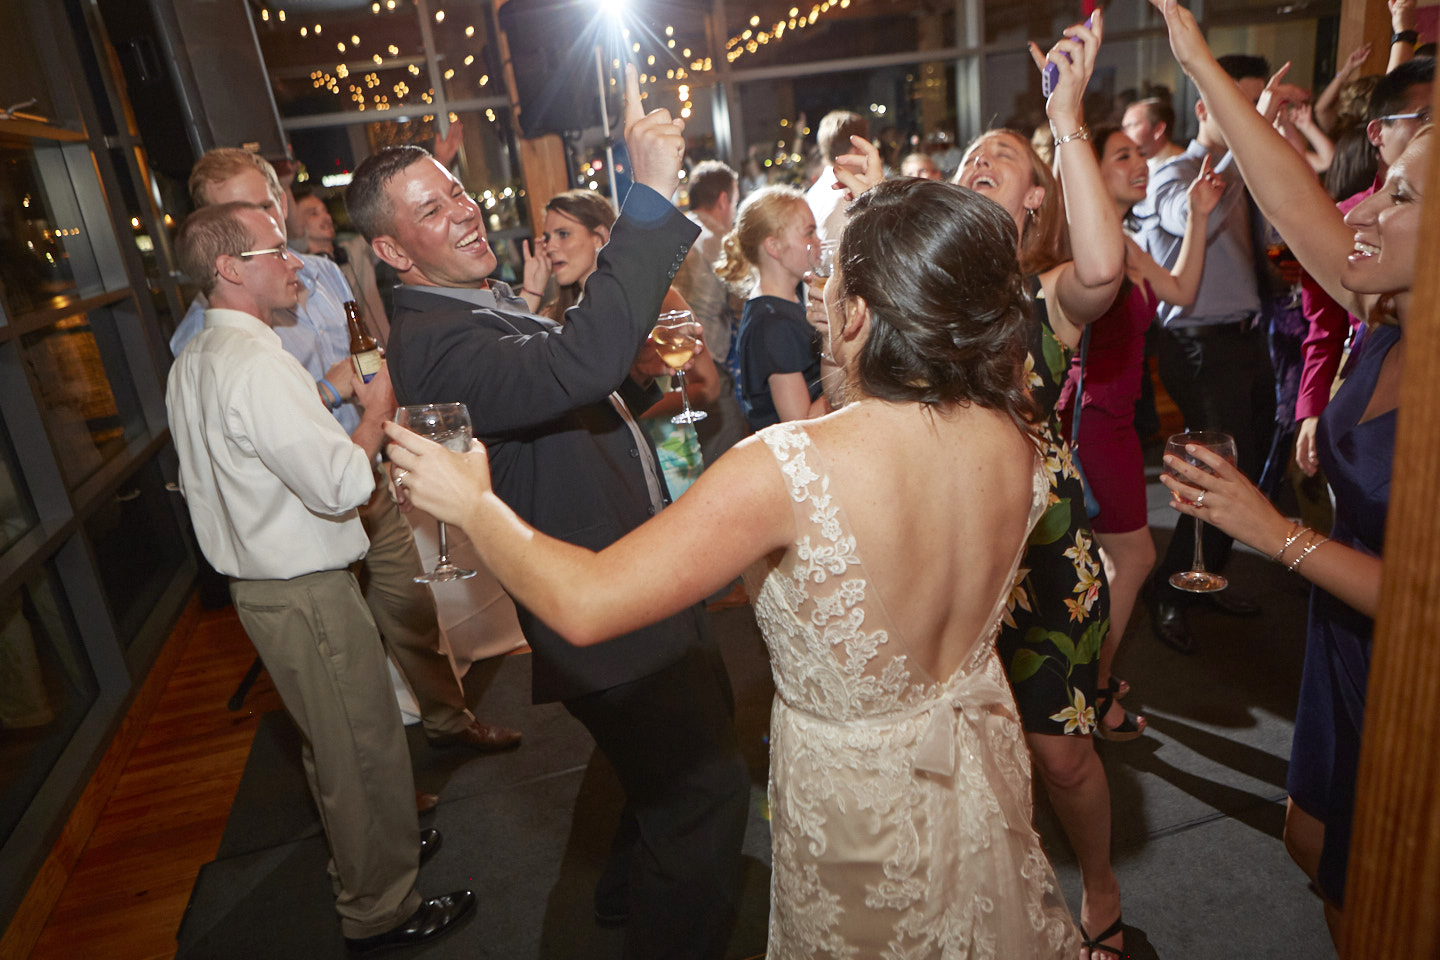 bride dancing with guests during wedding